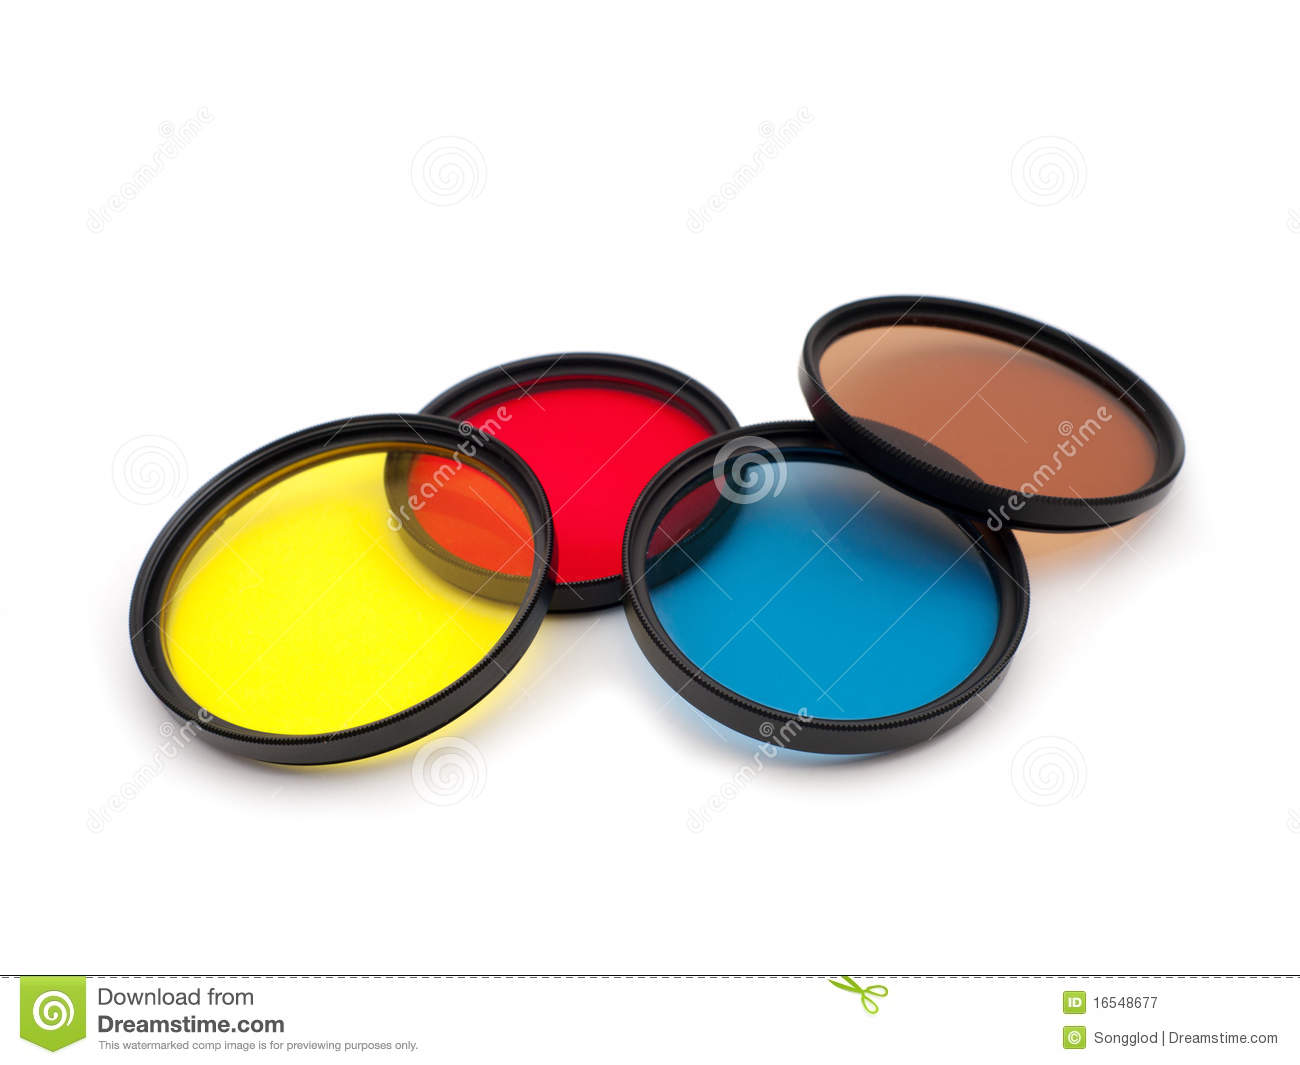 Color Camera Filters Royalty Free Stock Photography - Image: 16548677